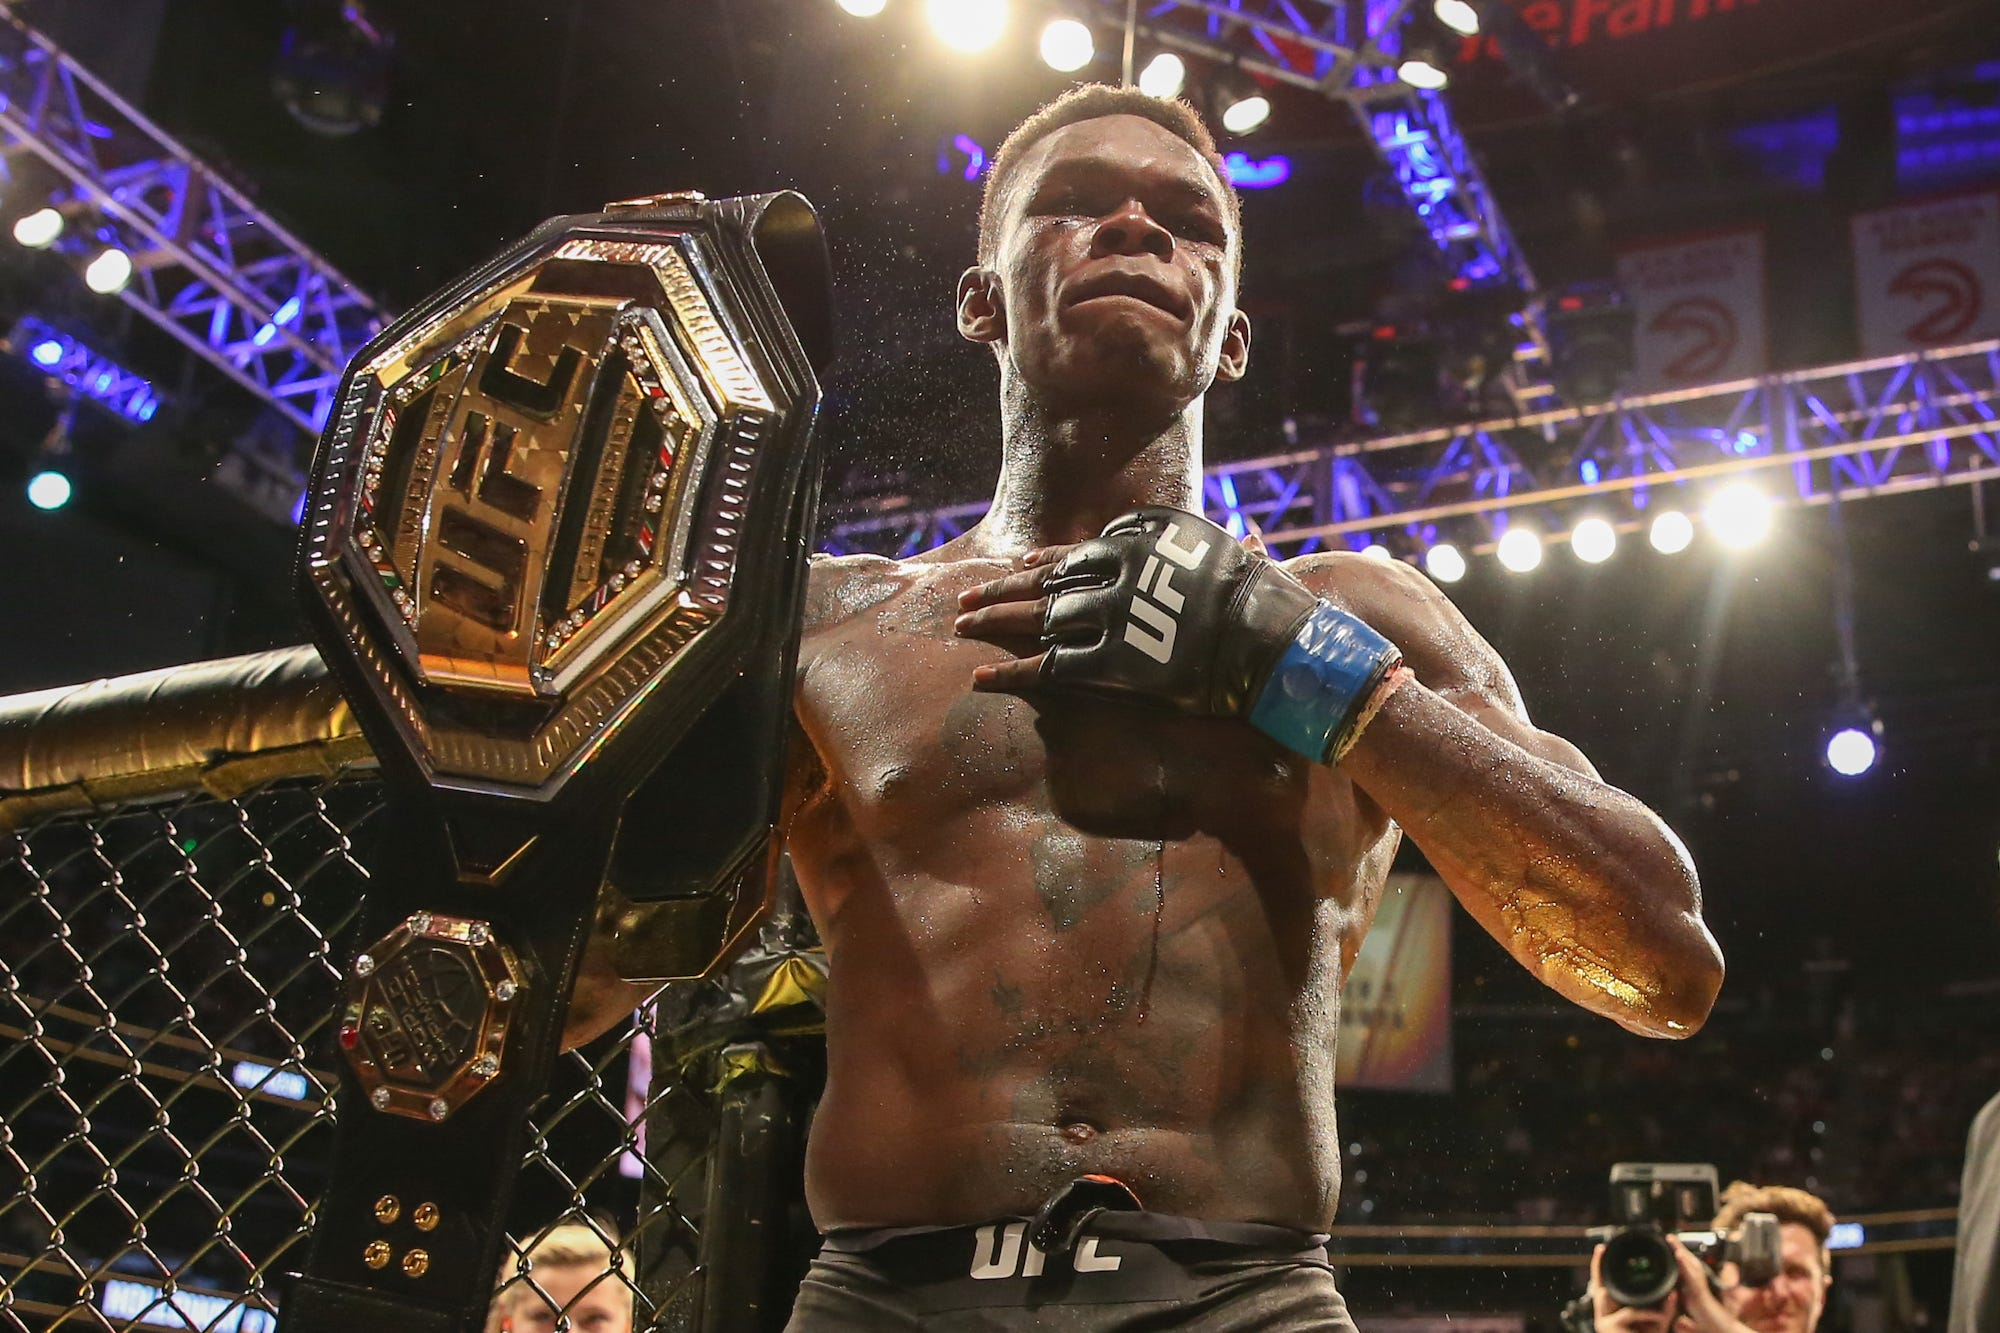 Israel Adesanya, a flashy kickboxer about to make his first title defense is the UFC's most exciting champion since Conor McGregor